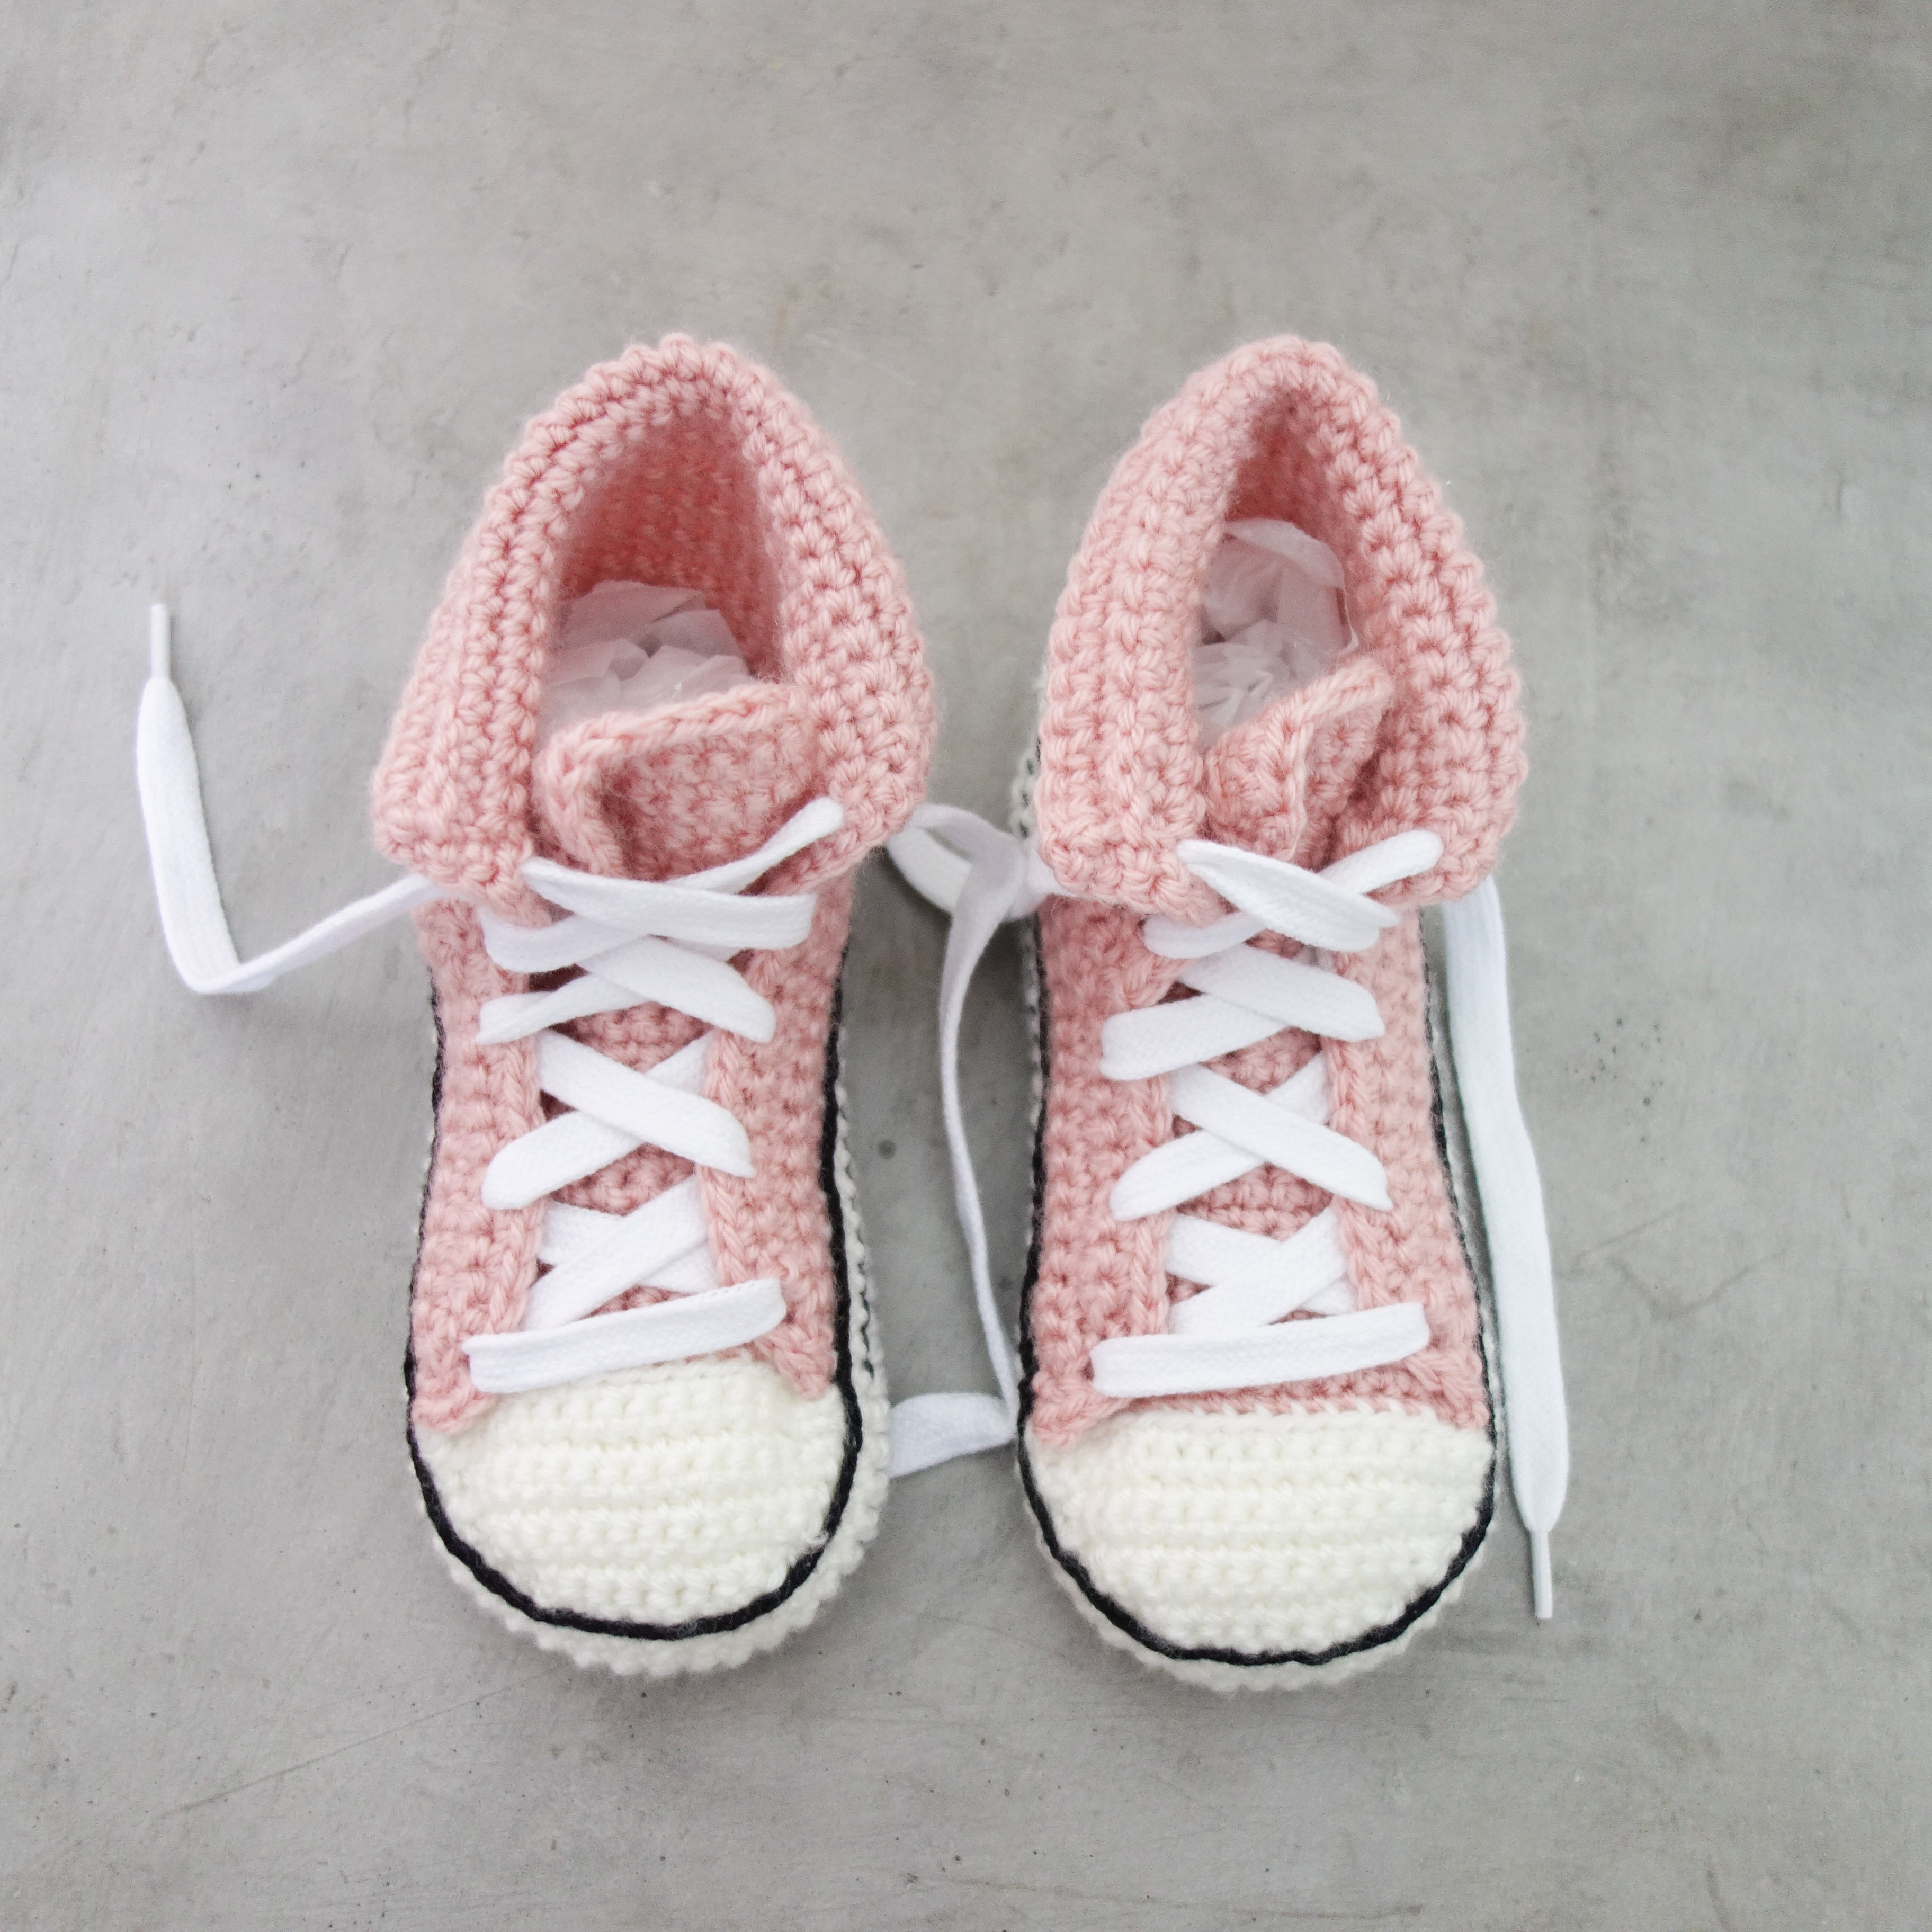 012 - Cool slippers for kids